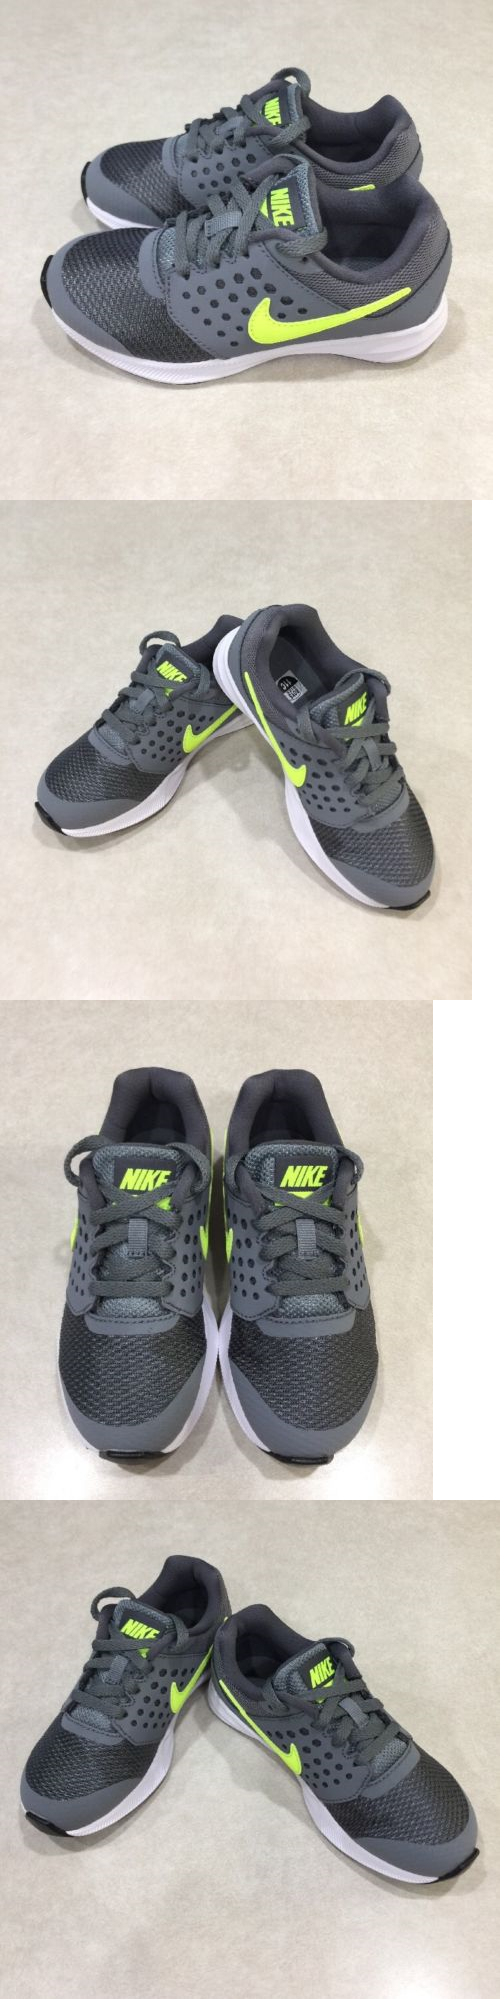 Boys Shoes 57929: Nike Downshifter 7 Youth Boy S Grey Volt Sneakers~~Size